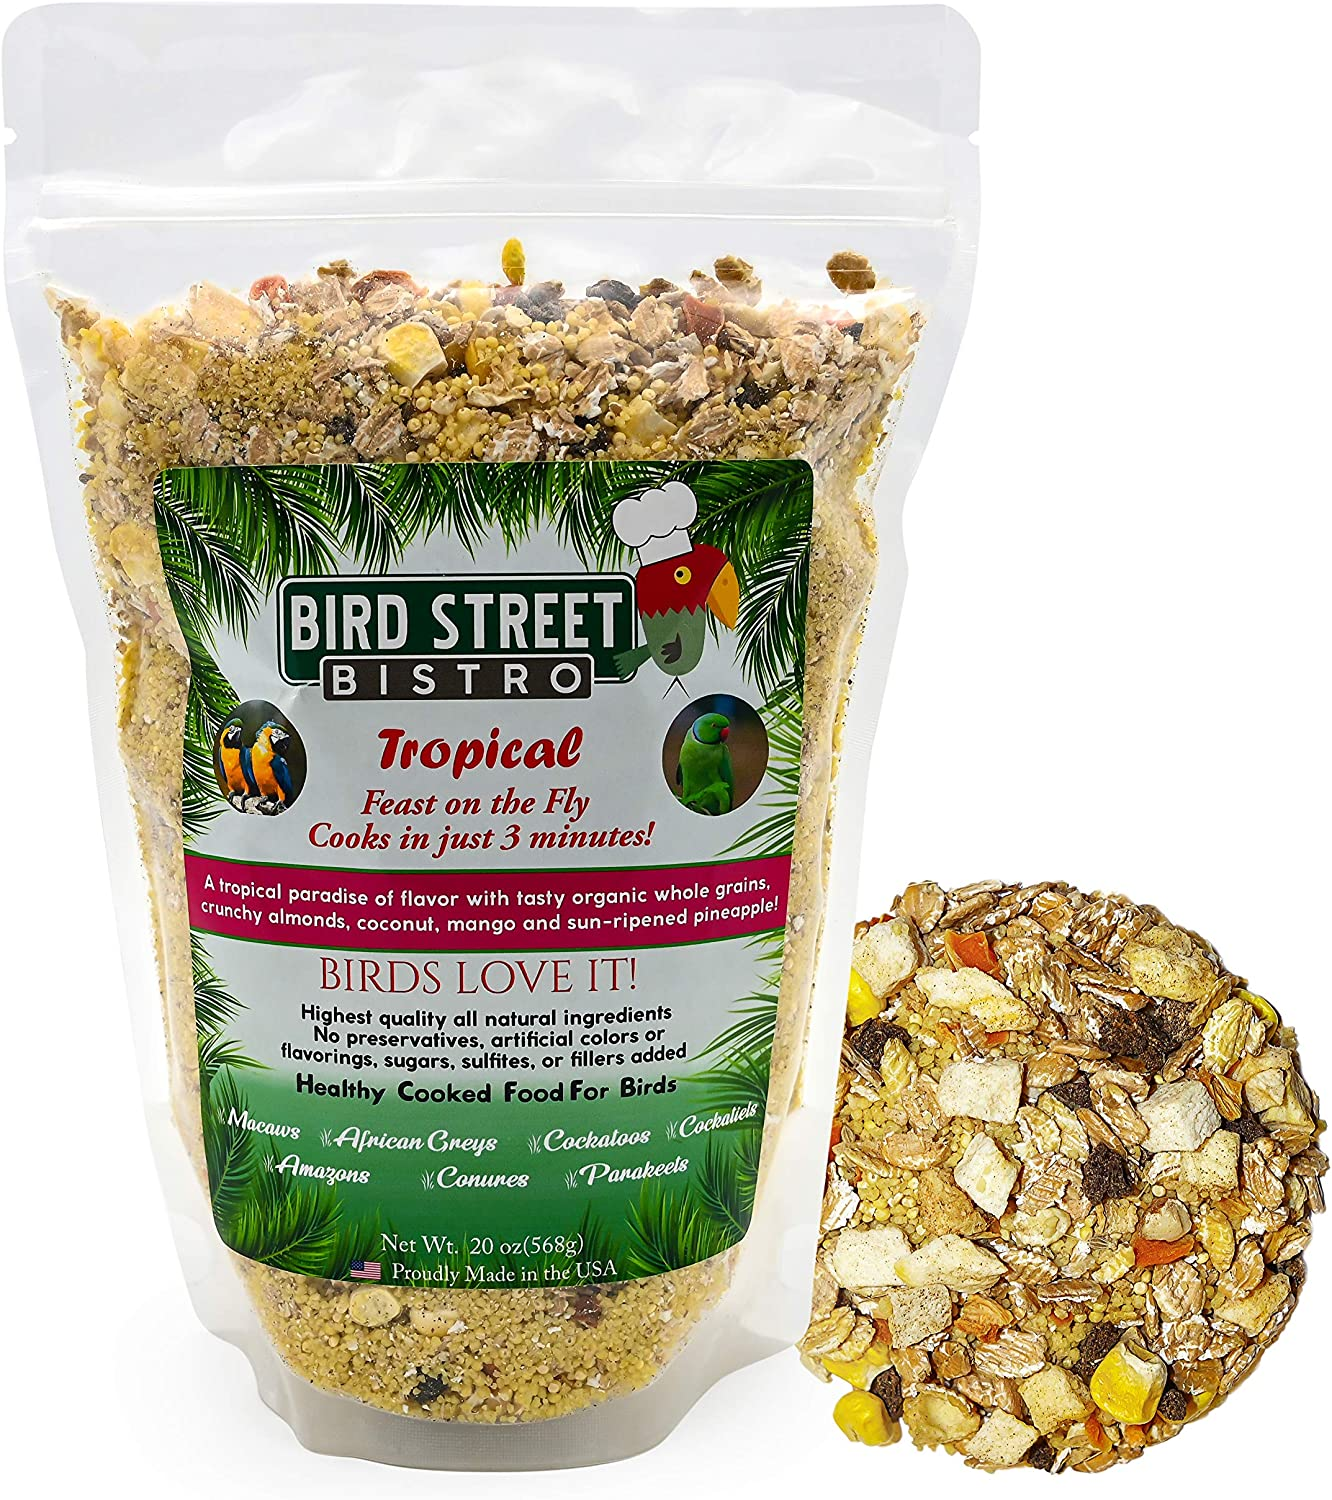 Bird Street Bistro Parrot Food Tropical | Cooks in 3 min. | All Natural & Organic Grains and Legumes, Healthy, Fruits, and Vegetables, Spices - No Fillers, Sugars, Sulfites (Large 20 oz.)